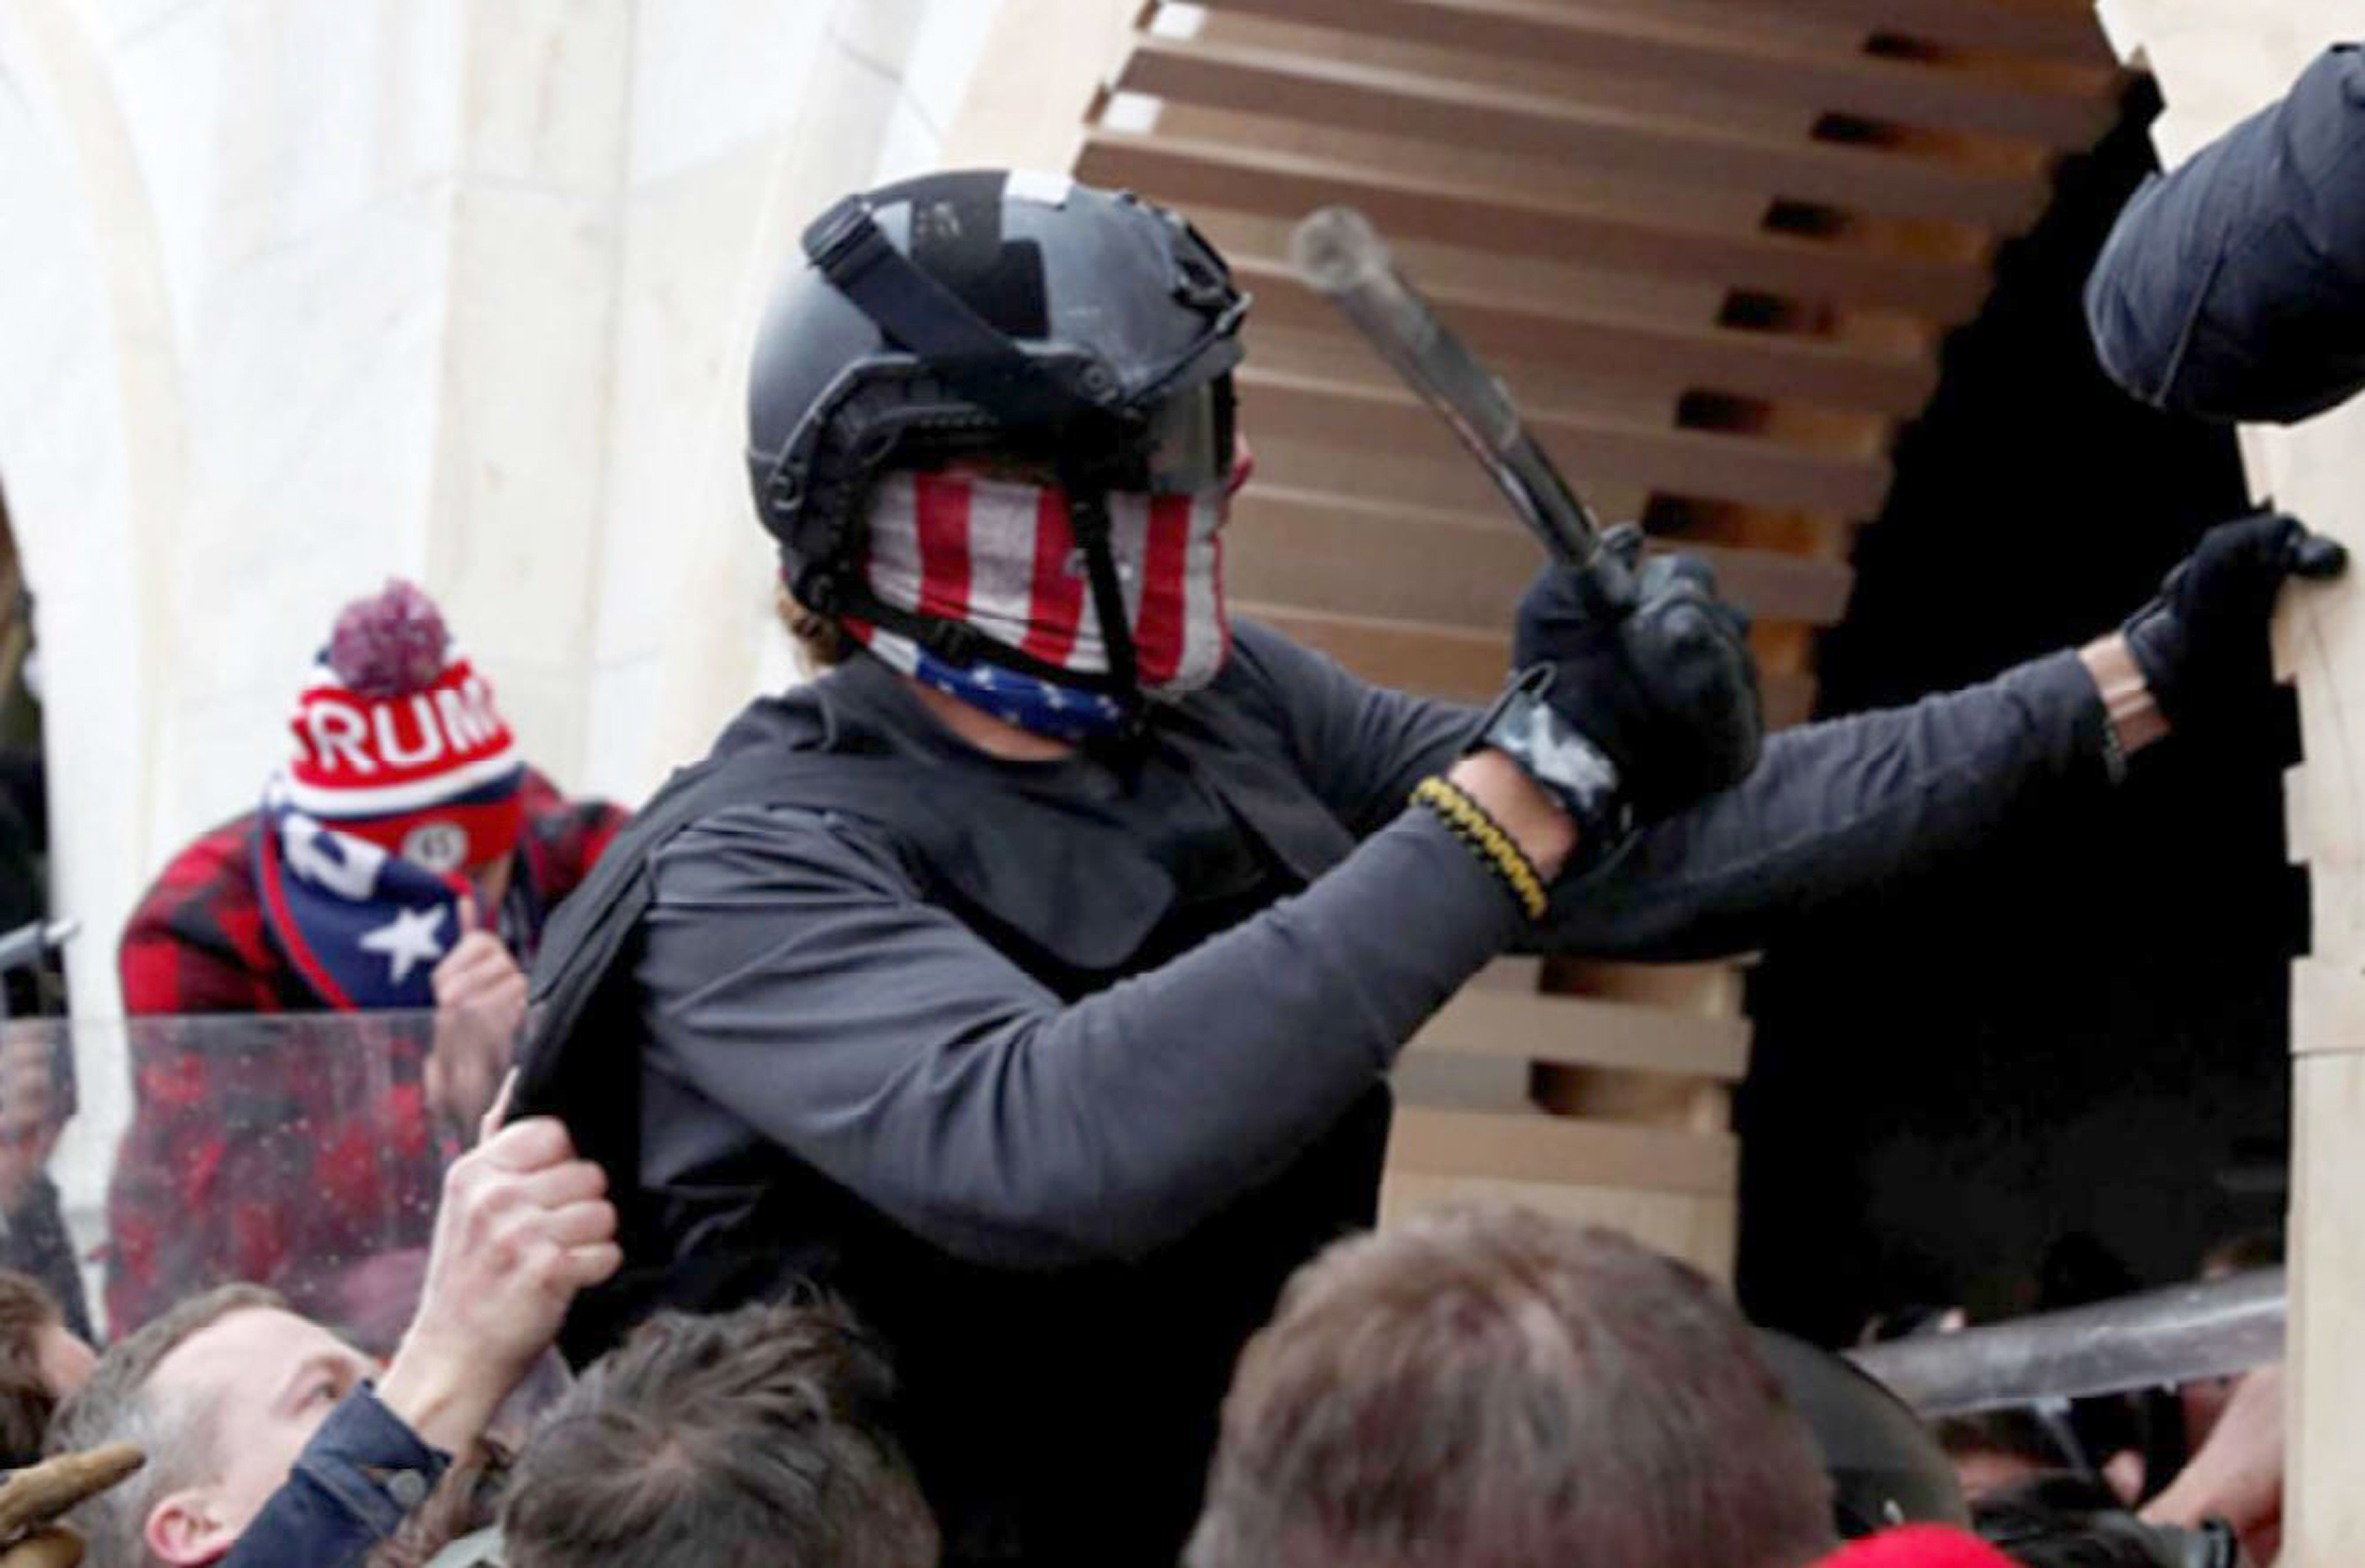 Two California men arrested, accused of spraying chemicals on officers at Capitol riot